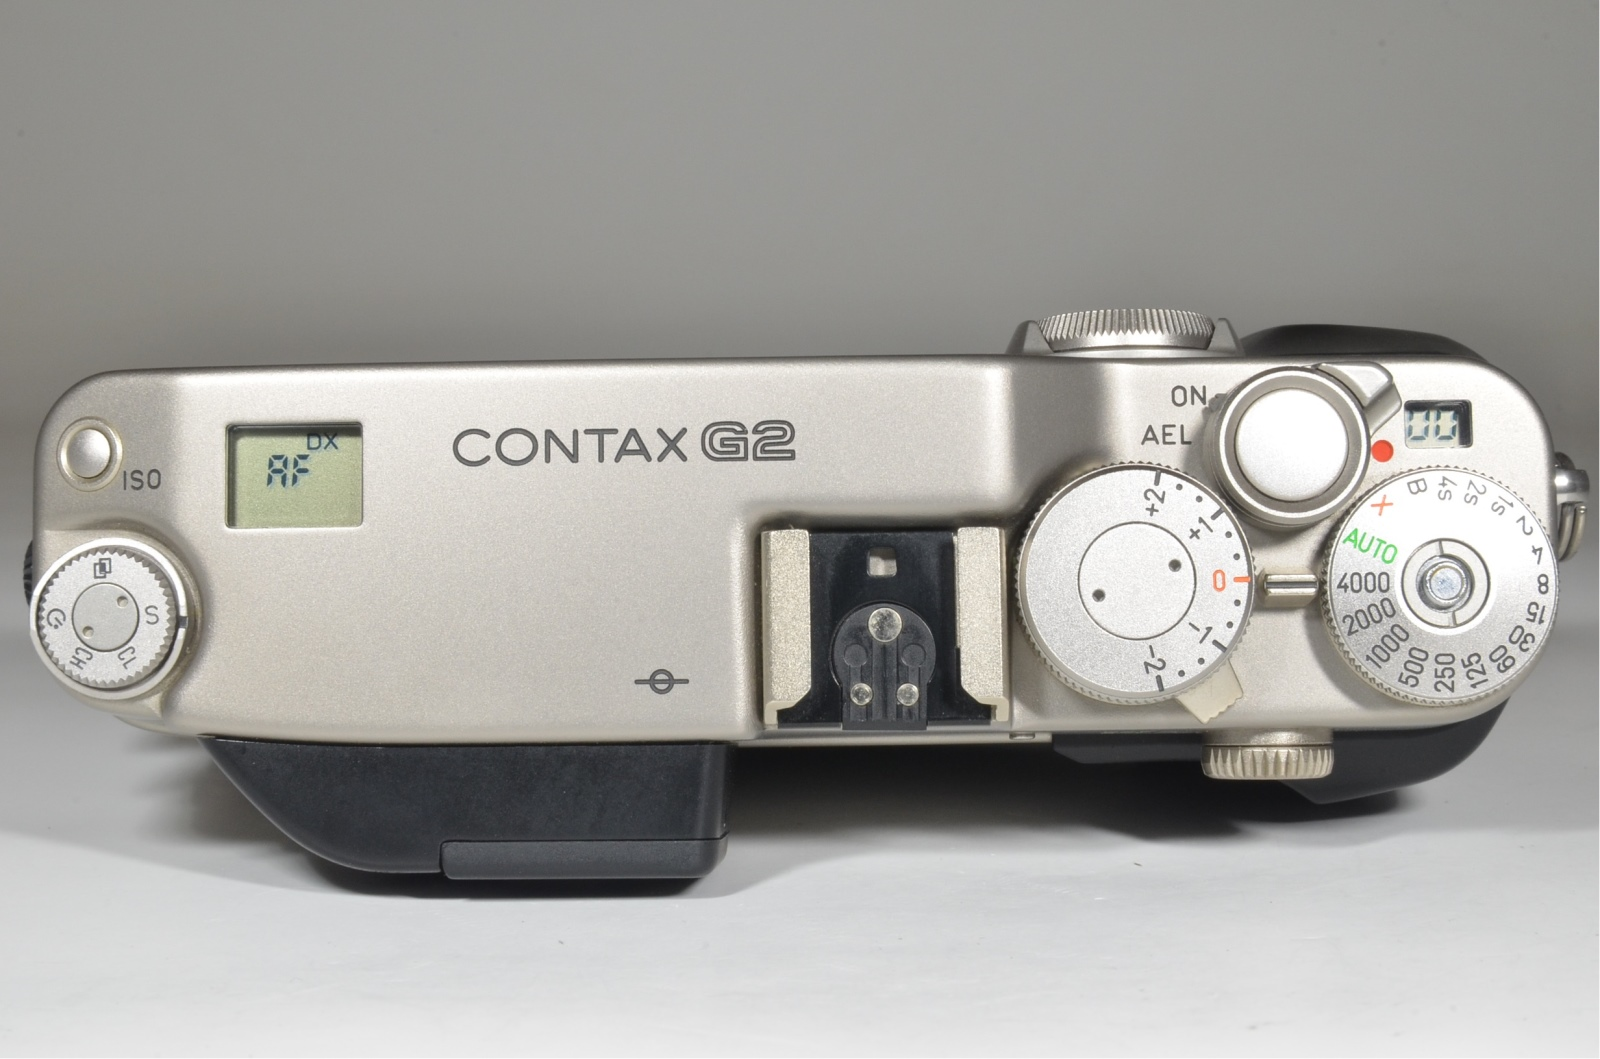 contax g2 camera / planar 45mm f2 / biogon 28mm f2.8 / sonnar 90mm f2.8 / tla200